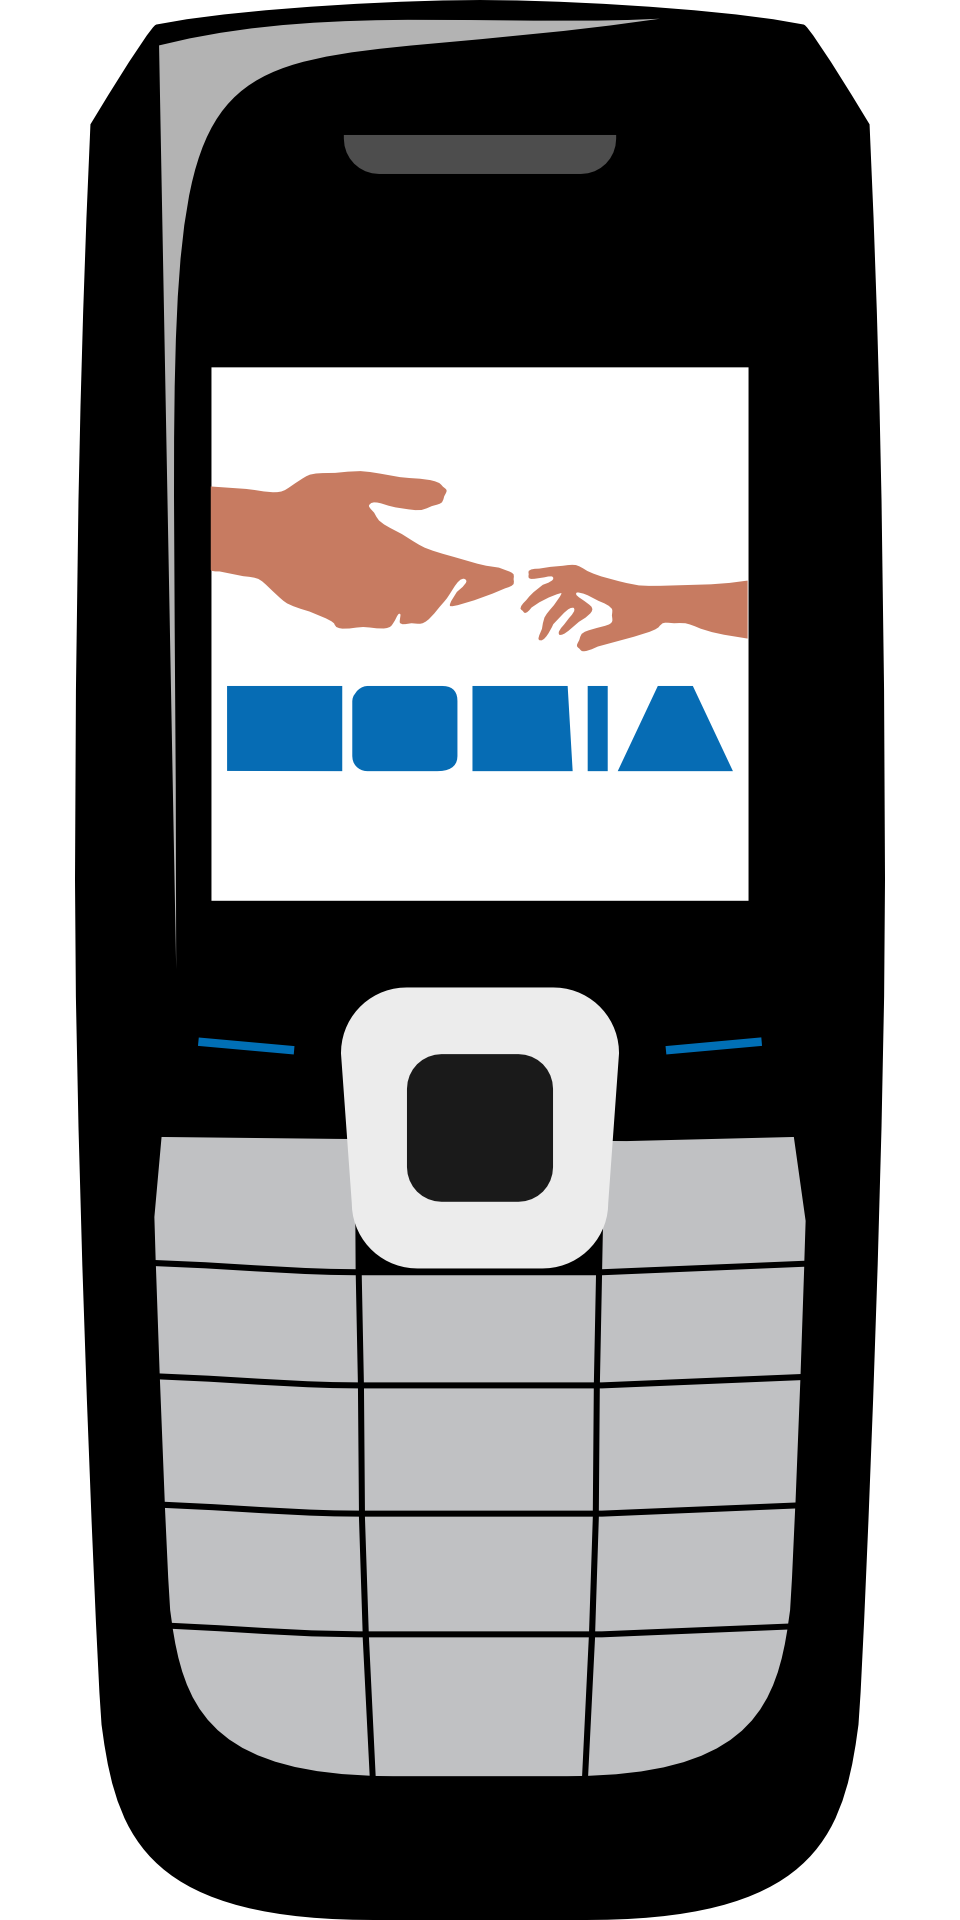 Drawing technology communication. Nokia symbol cellphone mobile